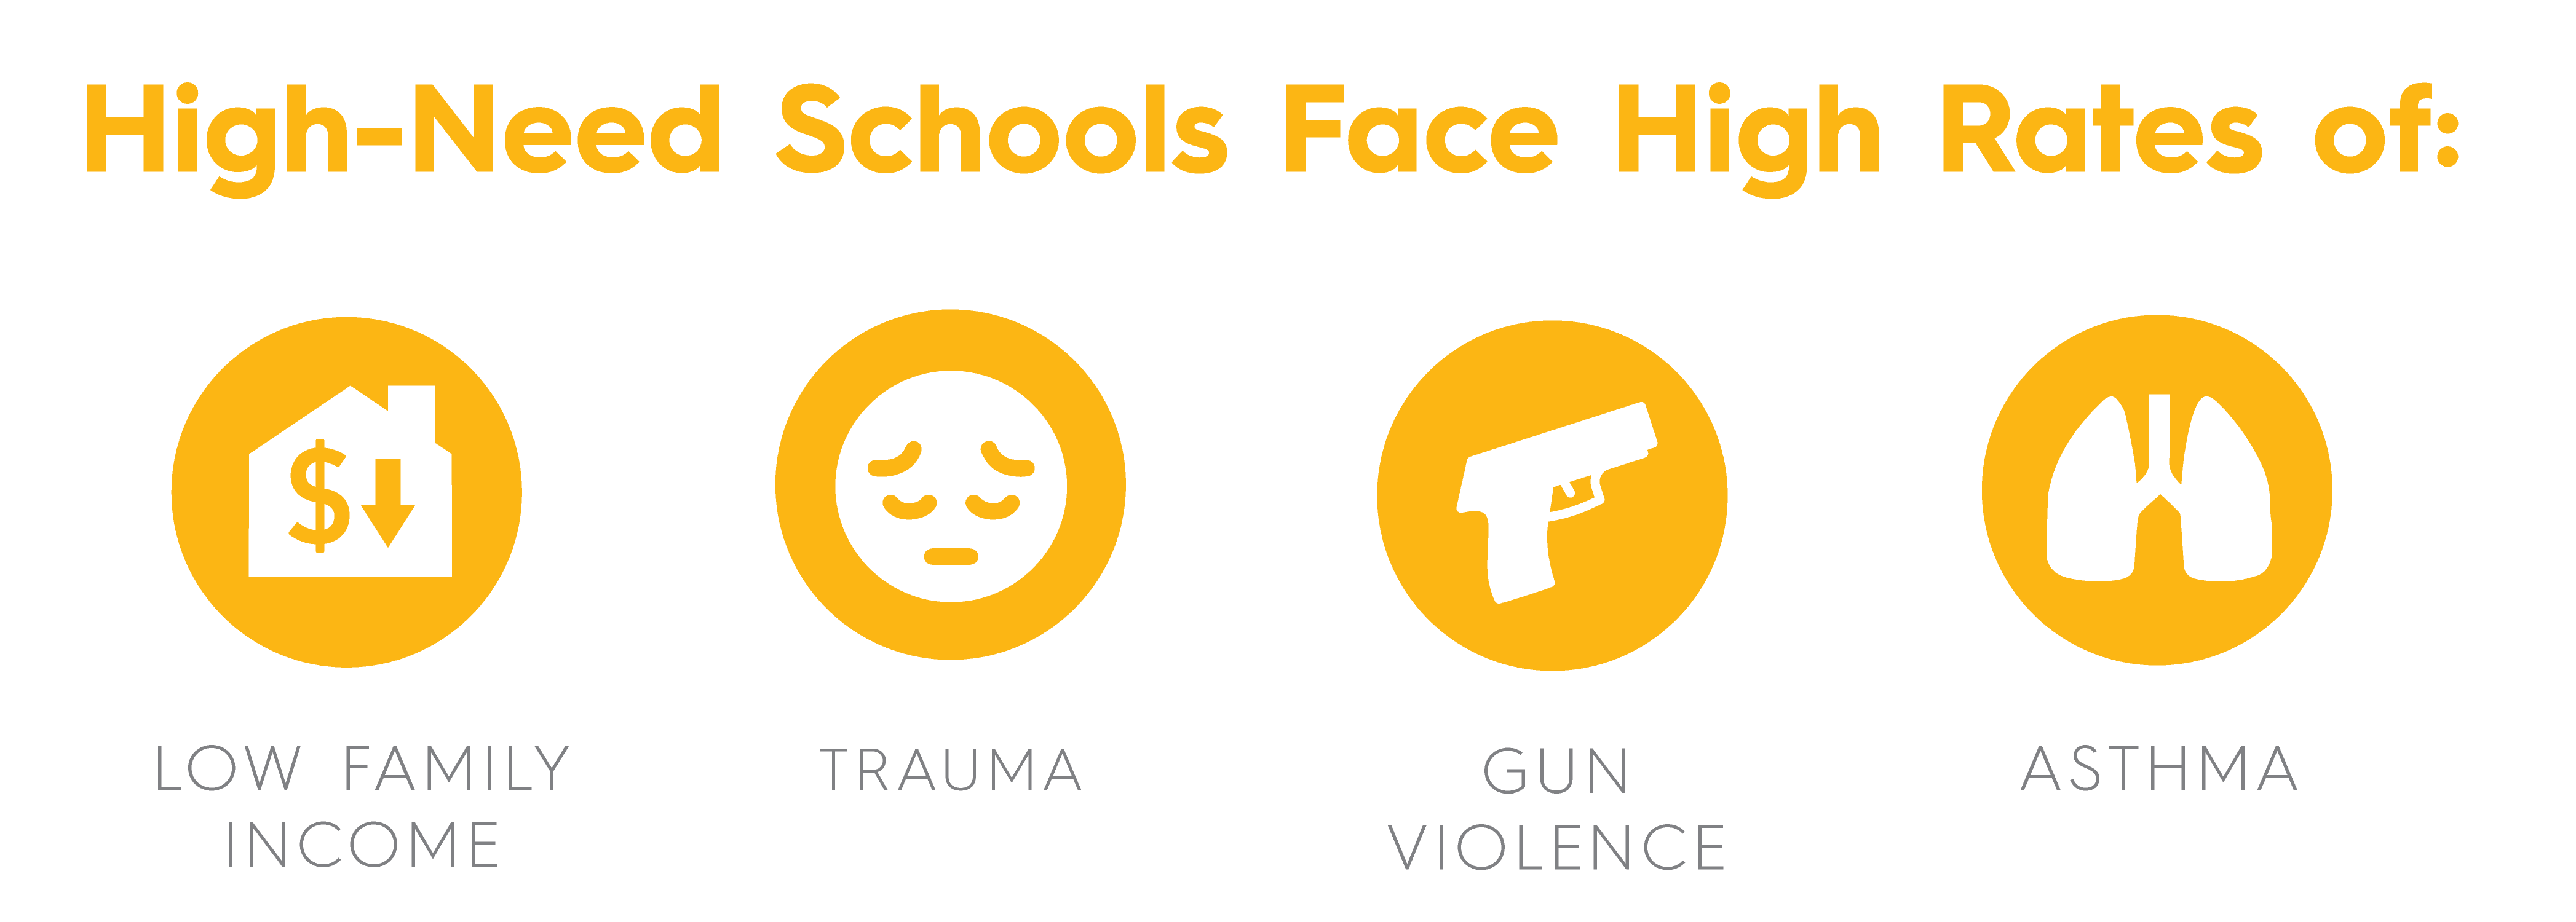 High need schools face high rates of low family income, trauma, gun violence, and asthma.